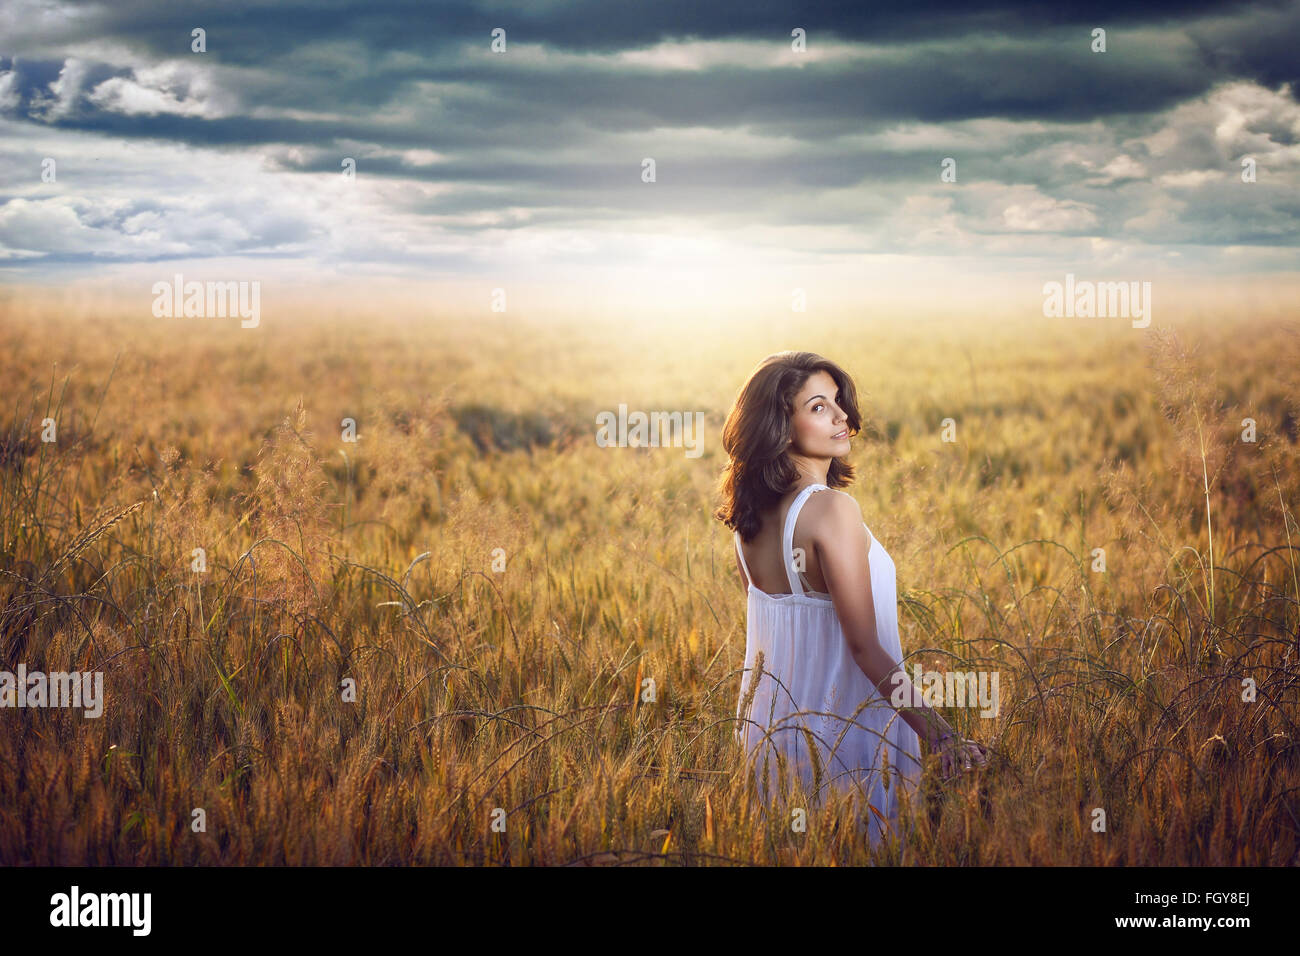 Beautiful woman in a corn field with dramatic sky . Sunset light - Stock Image